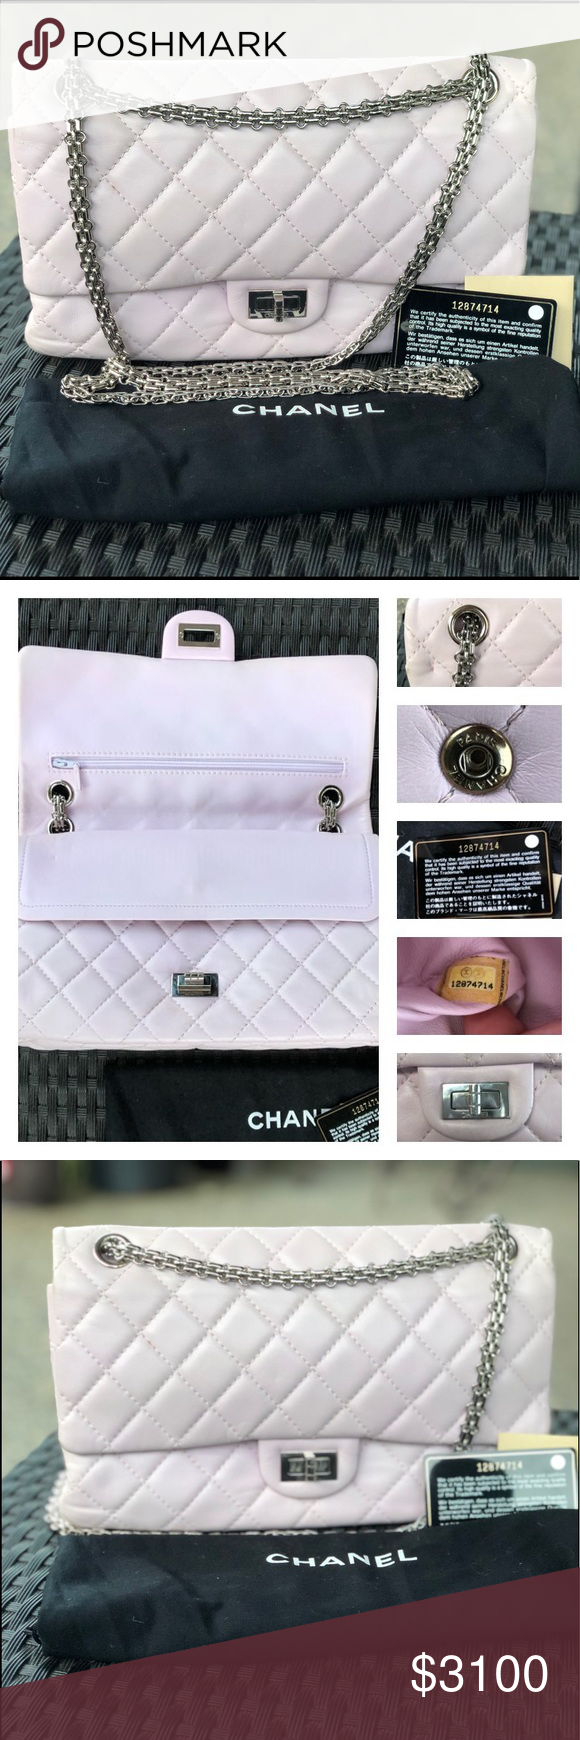 96ba33d6ba0310 Chanel Double Flap 2.55 CHANEL Light Pink 2.55 Reissue Classic 226 Double Flap  Bag Quilted Lambskin Leather All metal silver strap and hardware Light pink  ...